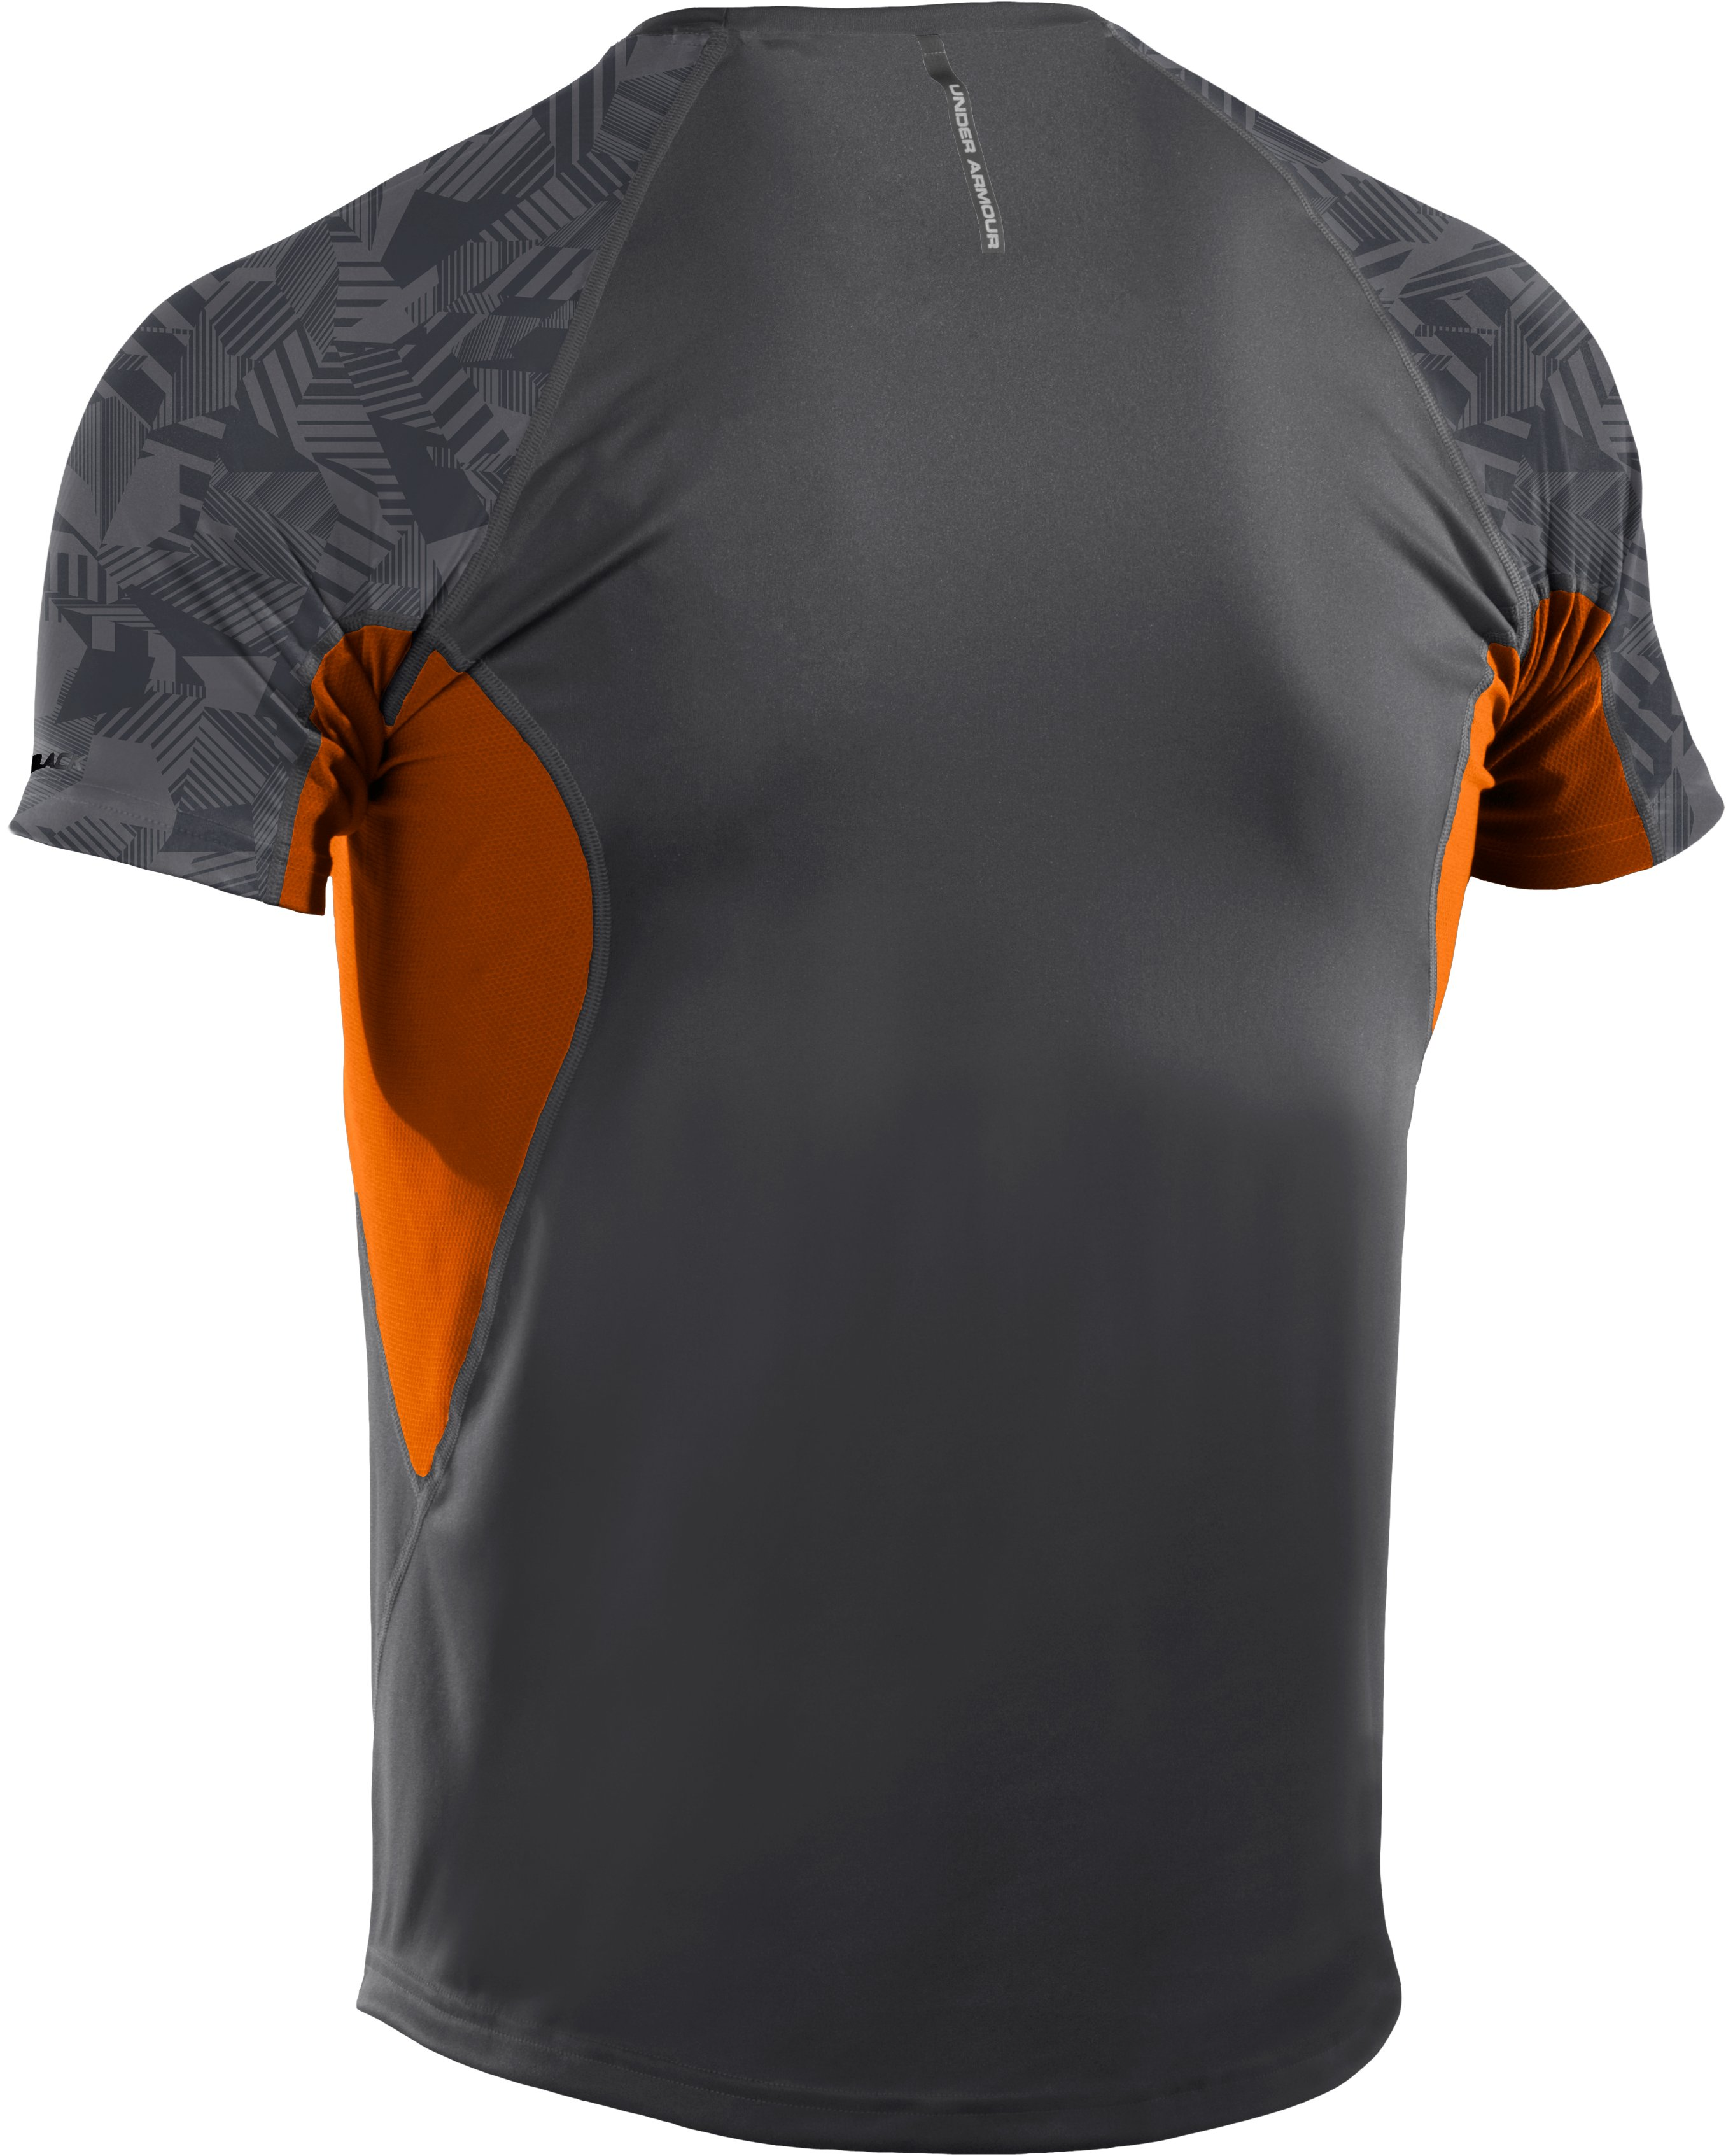 Men's coldblack® Engage Run T-Shirt, Graphite, undefined